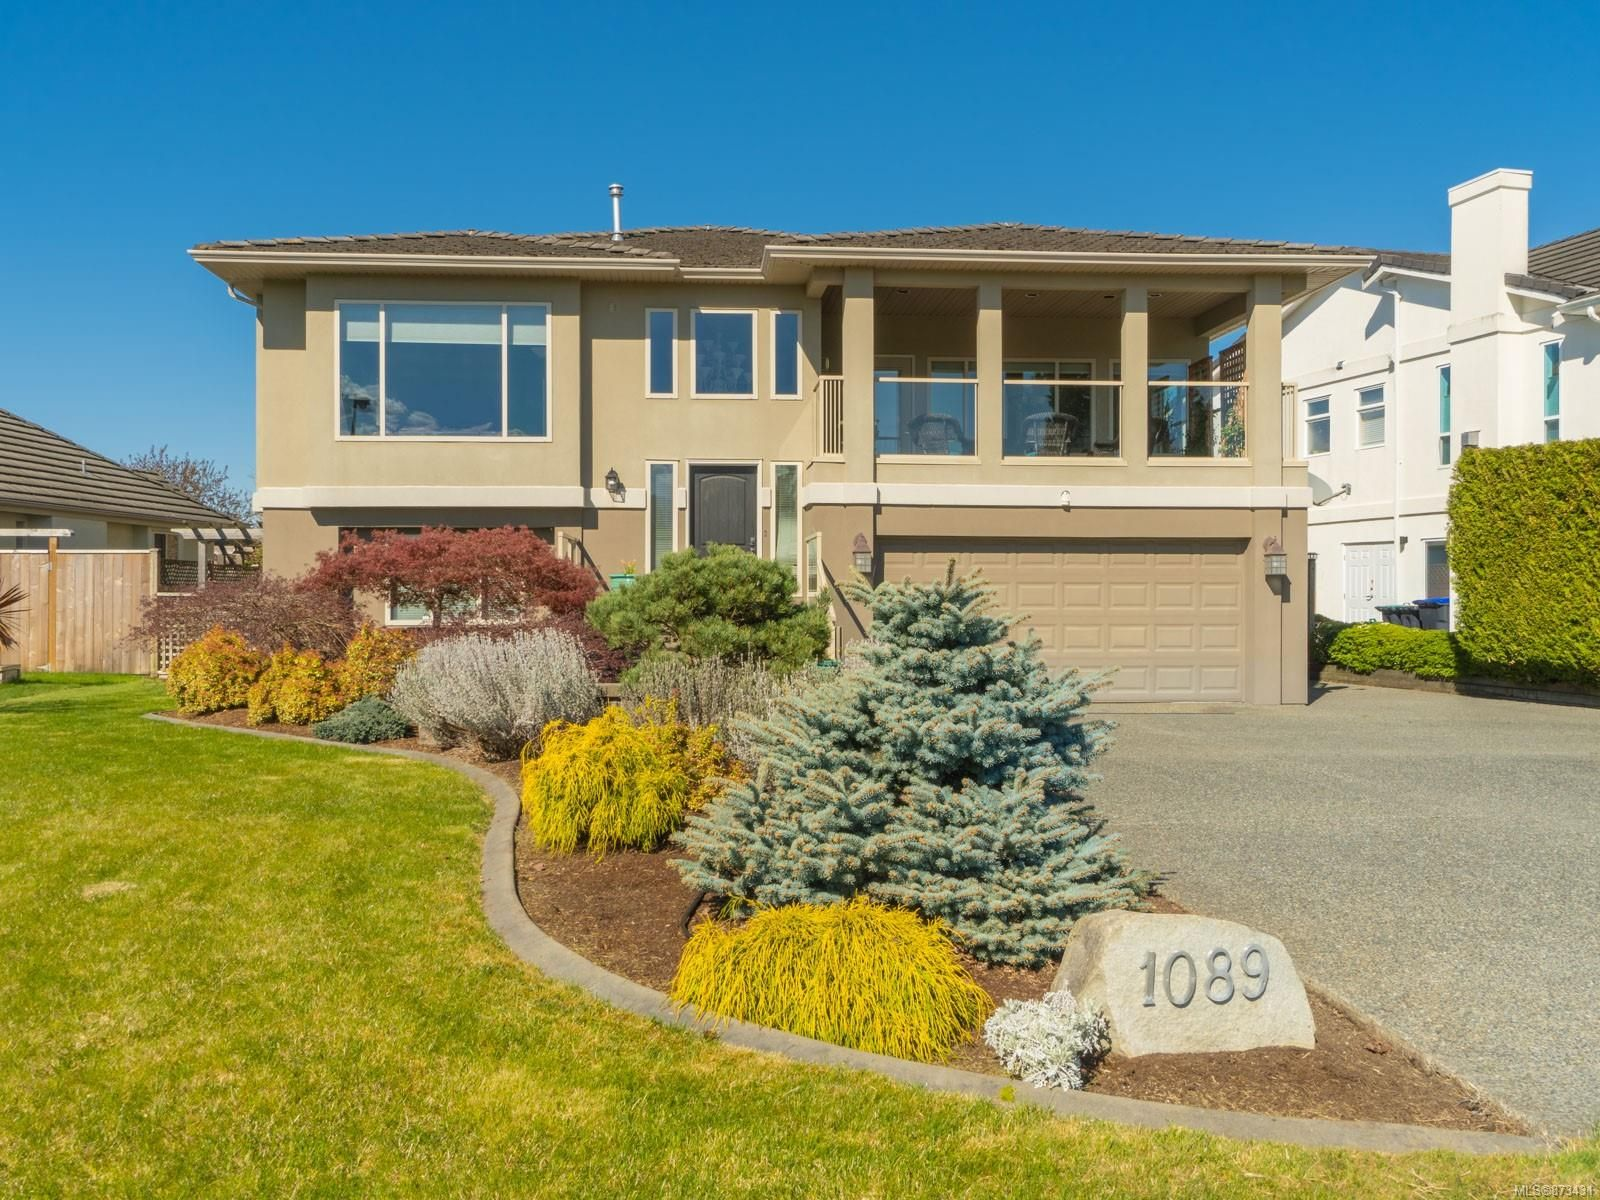 Main Photo: 1089 Roberton Blvd in : PQ French Creek House for sale (Parksville/Qualicum)  : MLS®# 873431